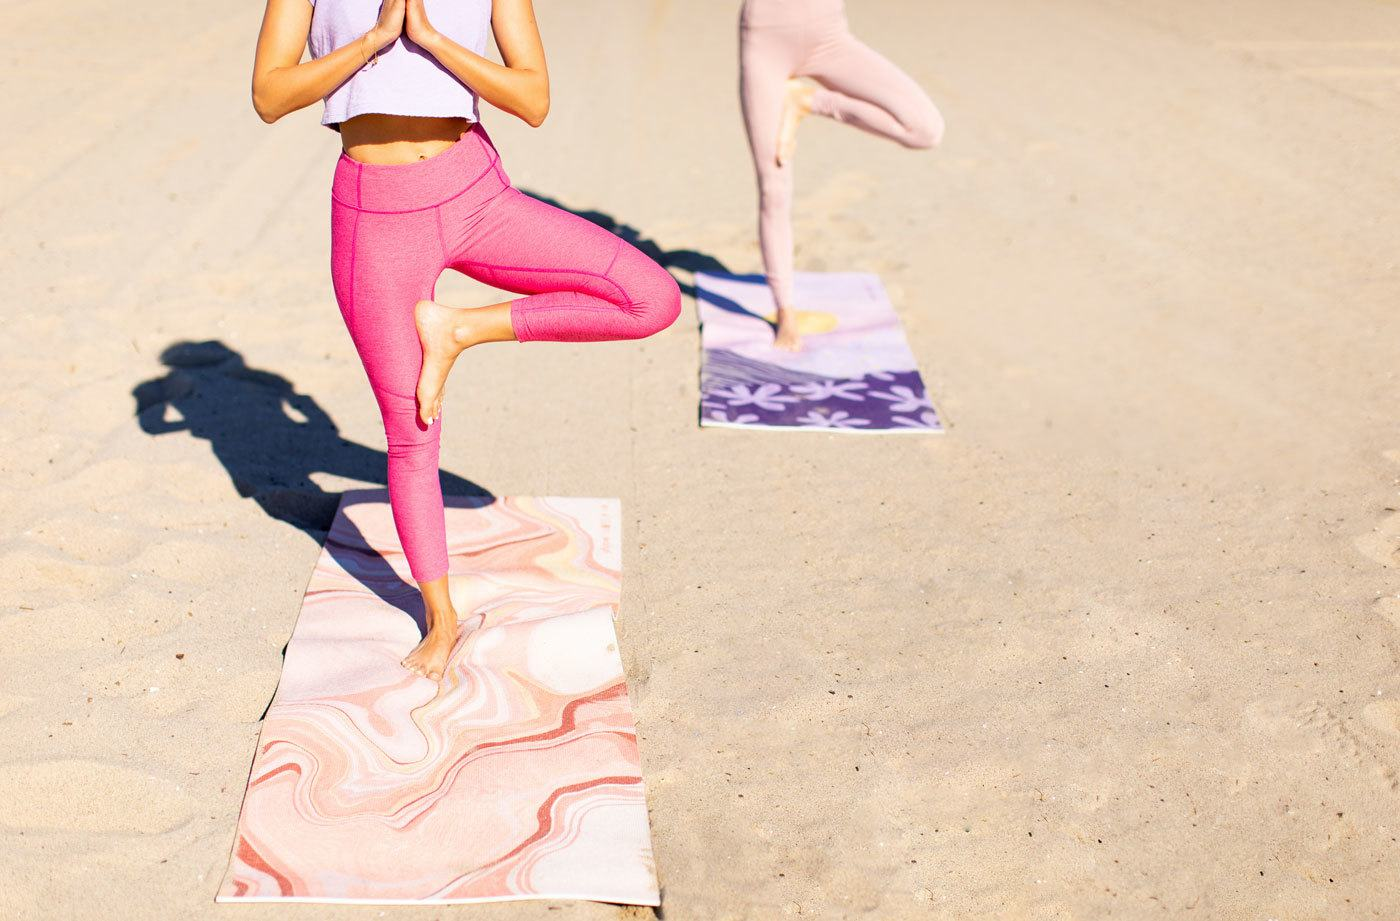 Thumbnail for Raise your vibe with this rose quartz-inspired yoga mat